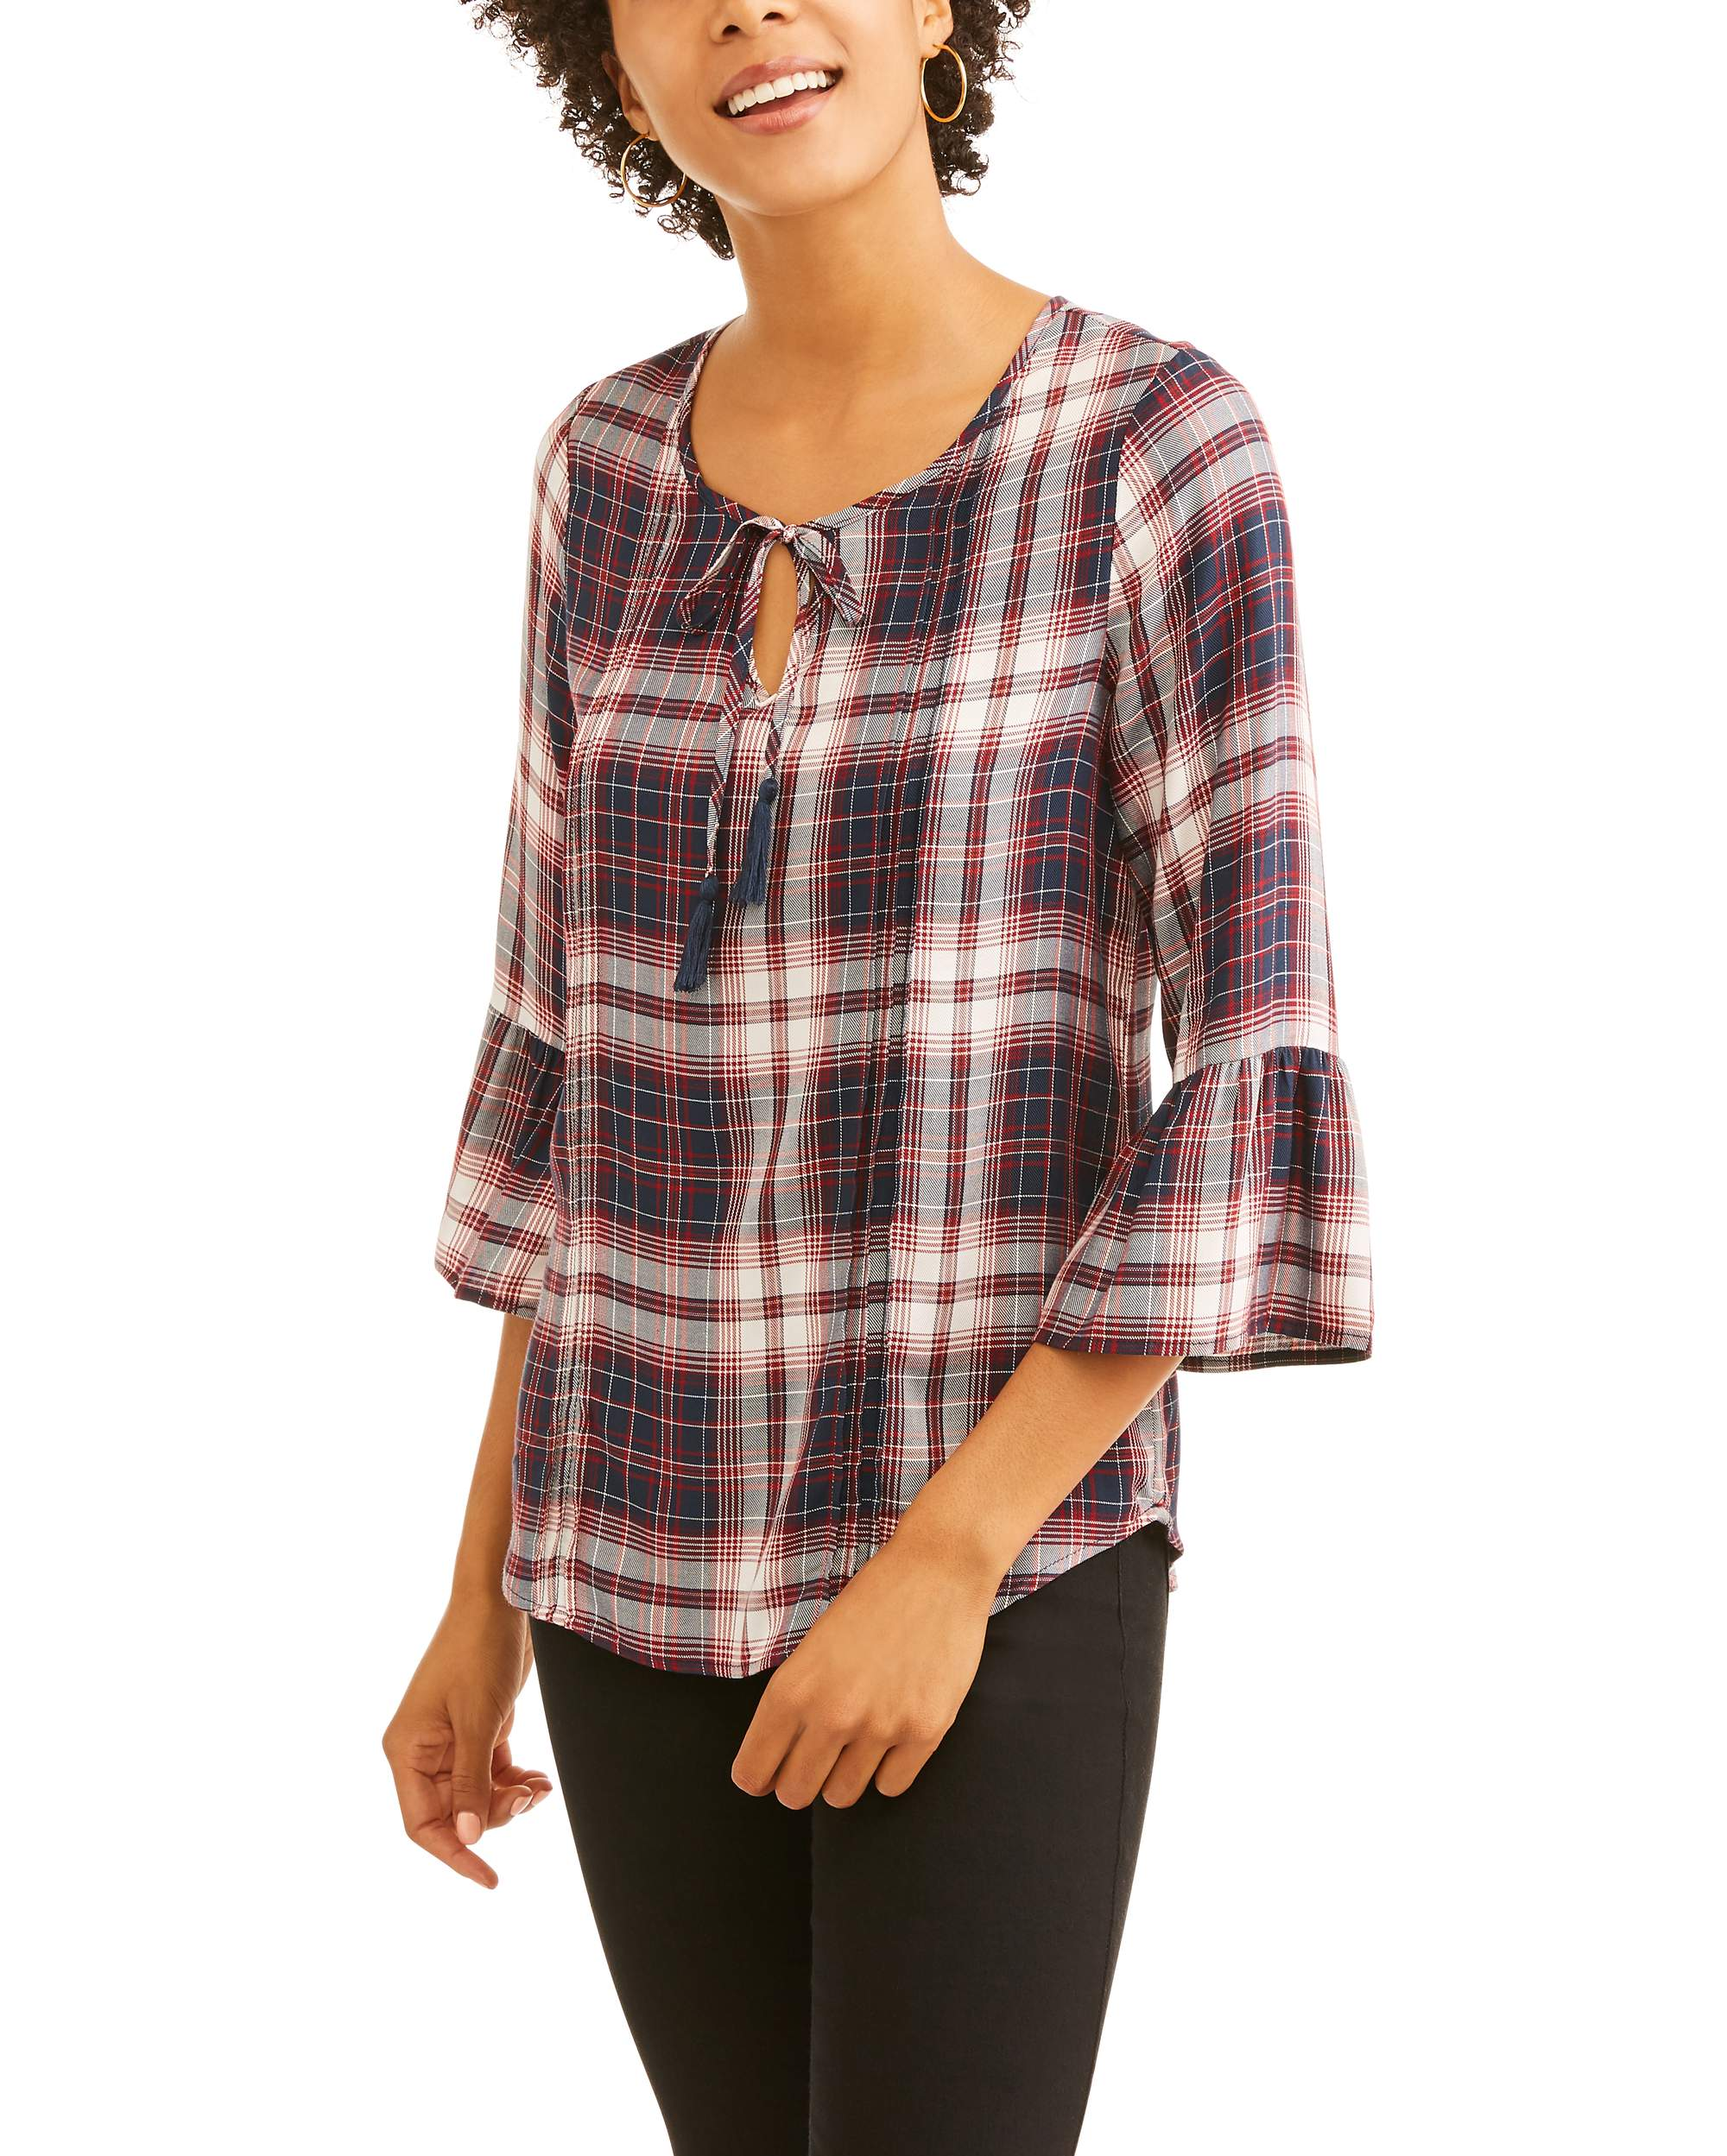 e Women's Plaid Peasant Top